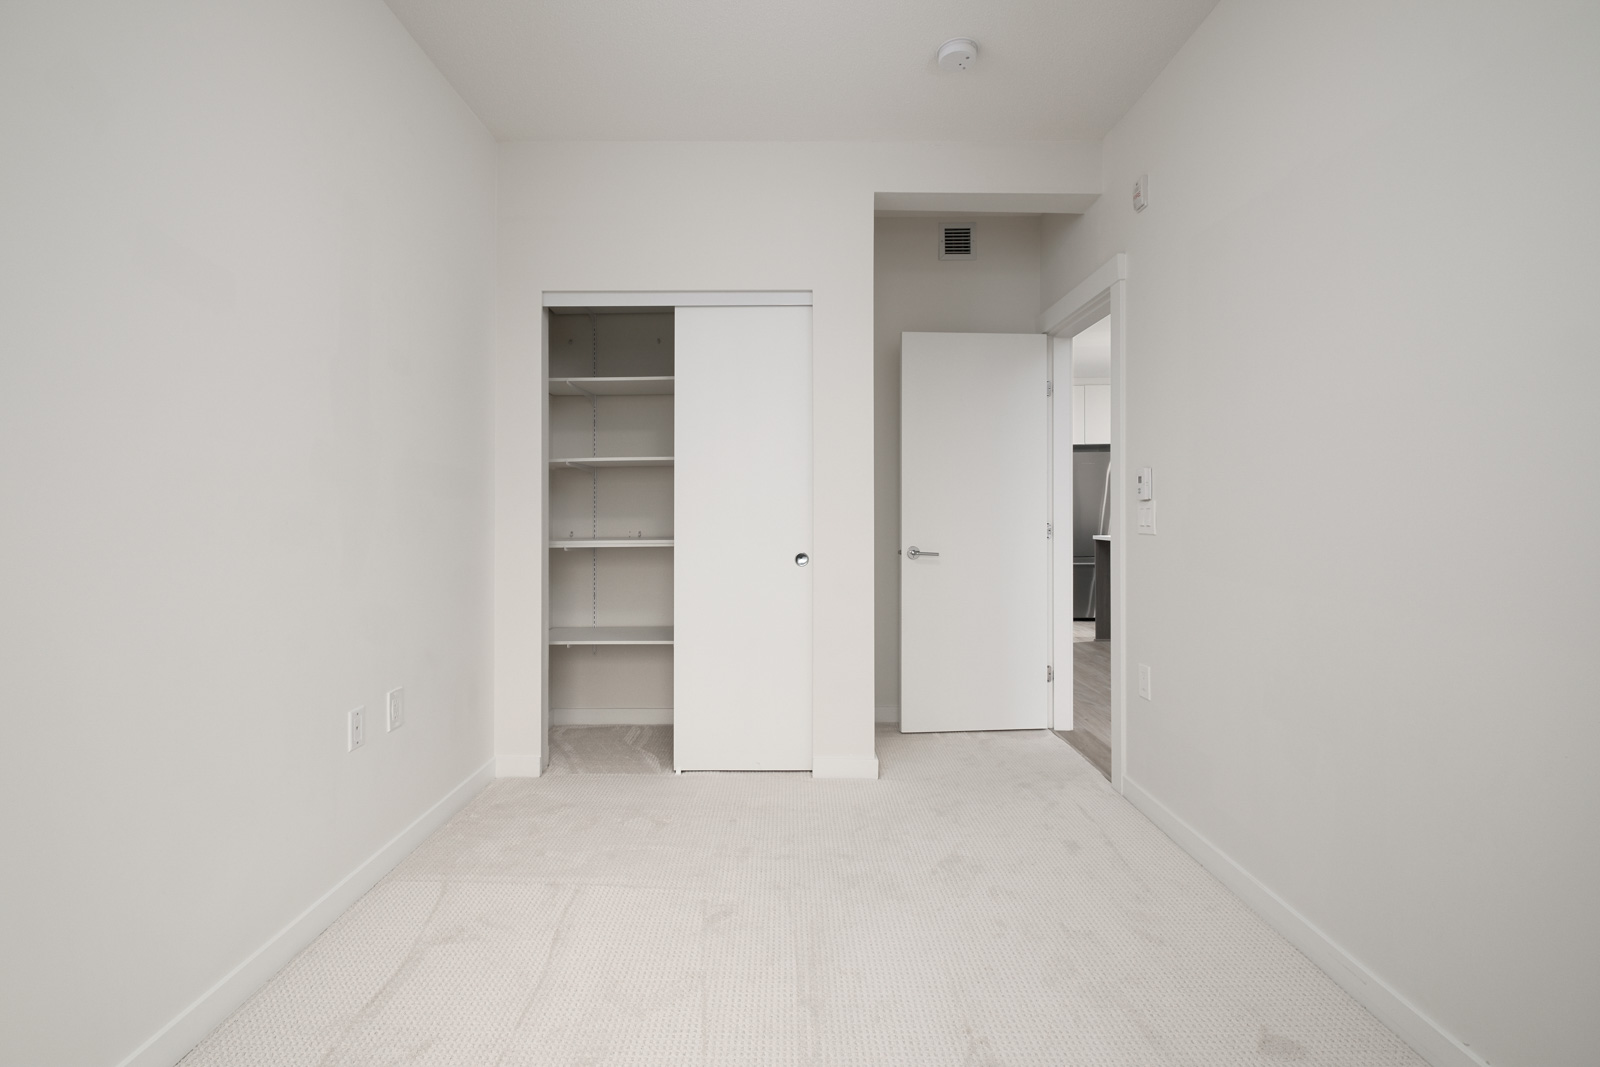 walk in closet in rental condo at Kindred Moodyville in the Lonsdale neighbourhood of North Vancouver